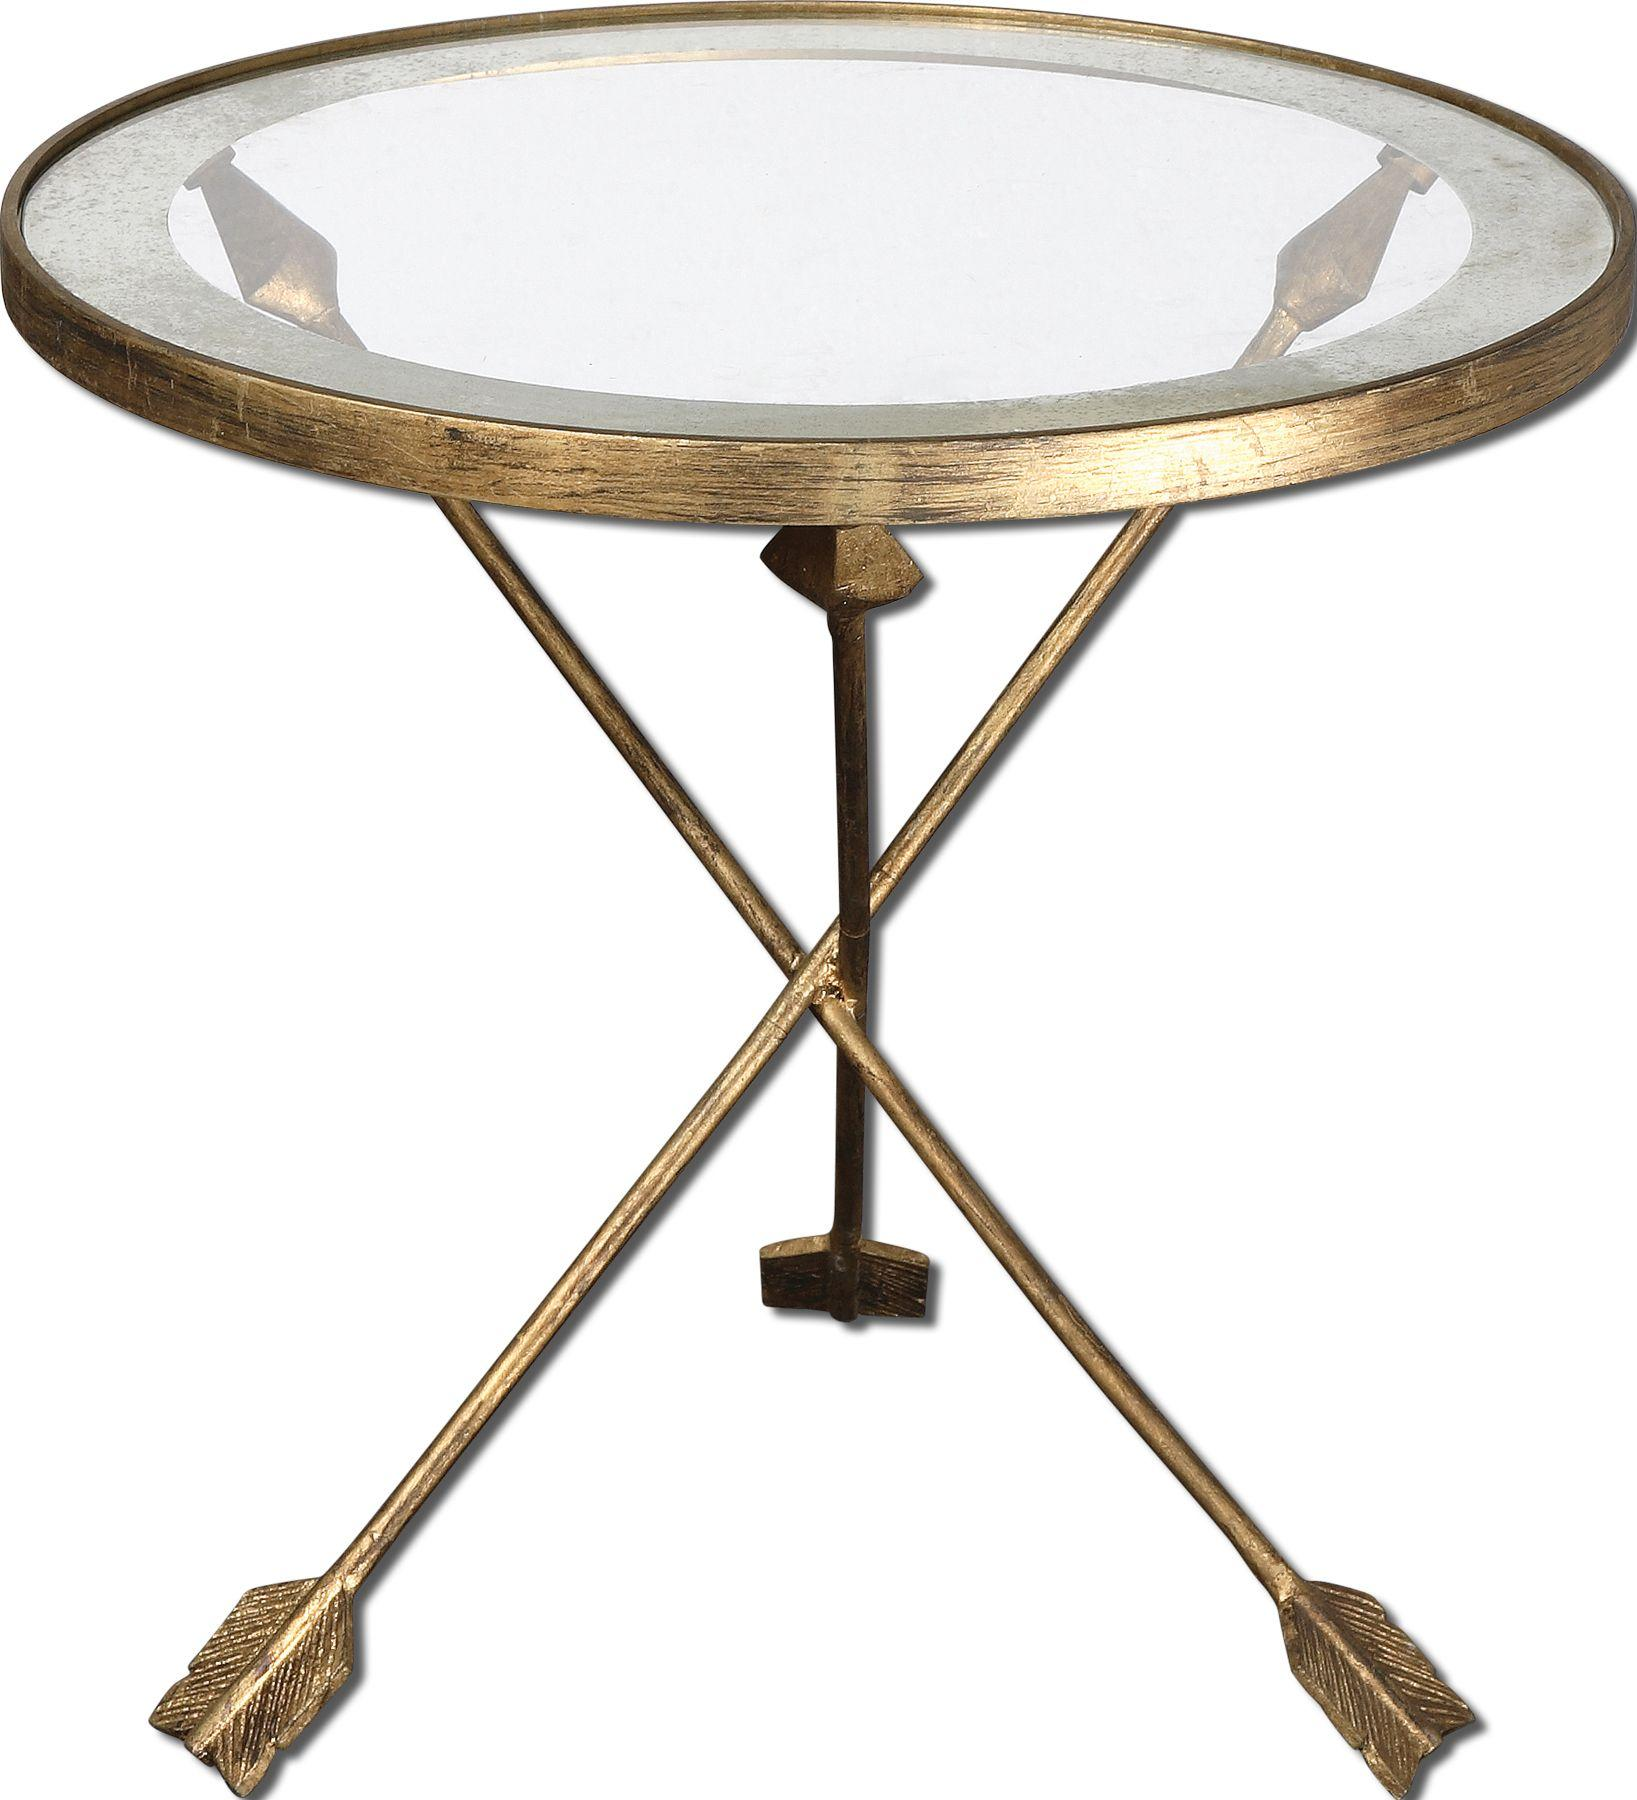 uttermost accent furniture occasional tables aero products color round glass top table small triangle parsons coffee chaise hairpin end tro metal pedestal base antique lamps